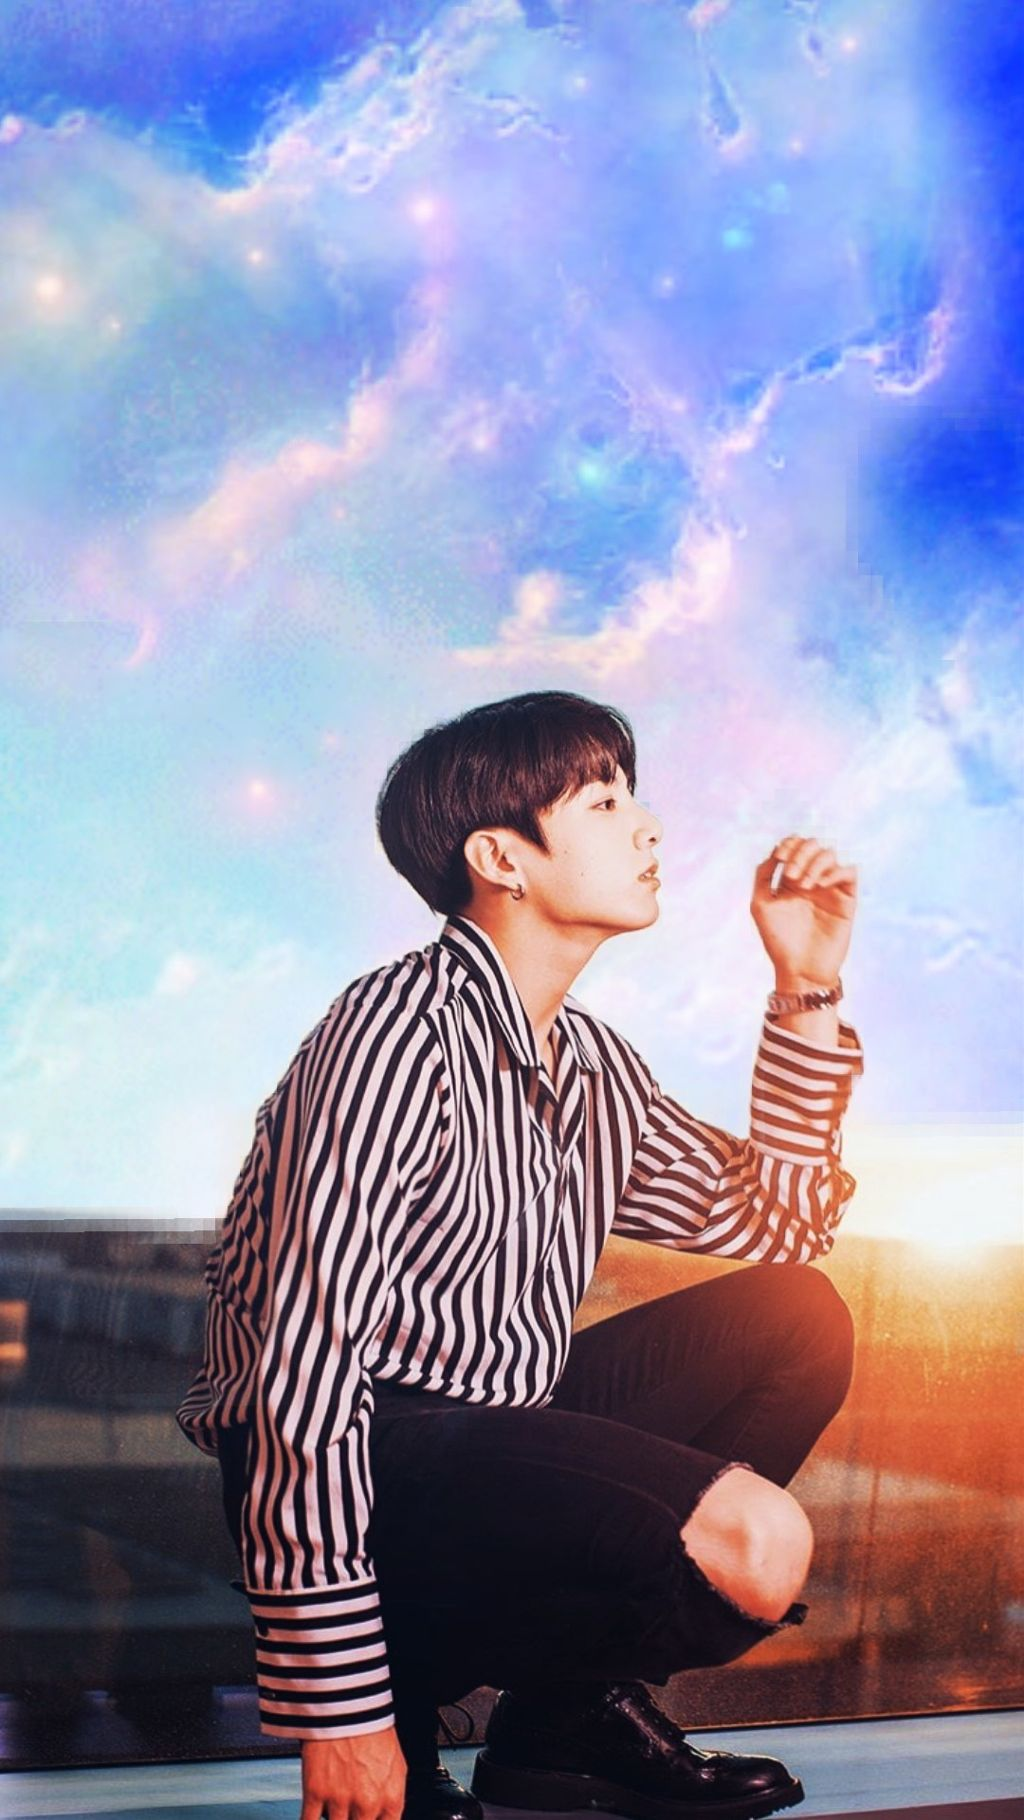 Jungkook Bts Wallpaper Image By Adidosh